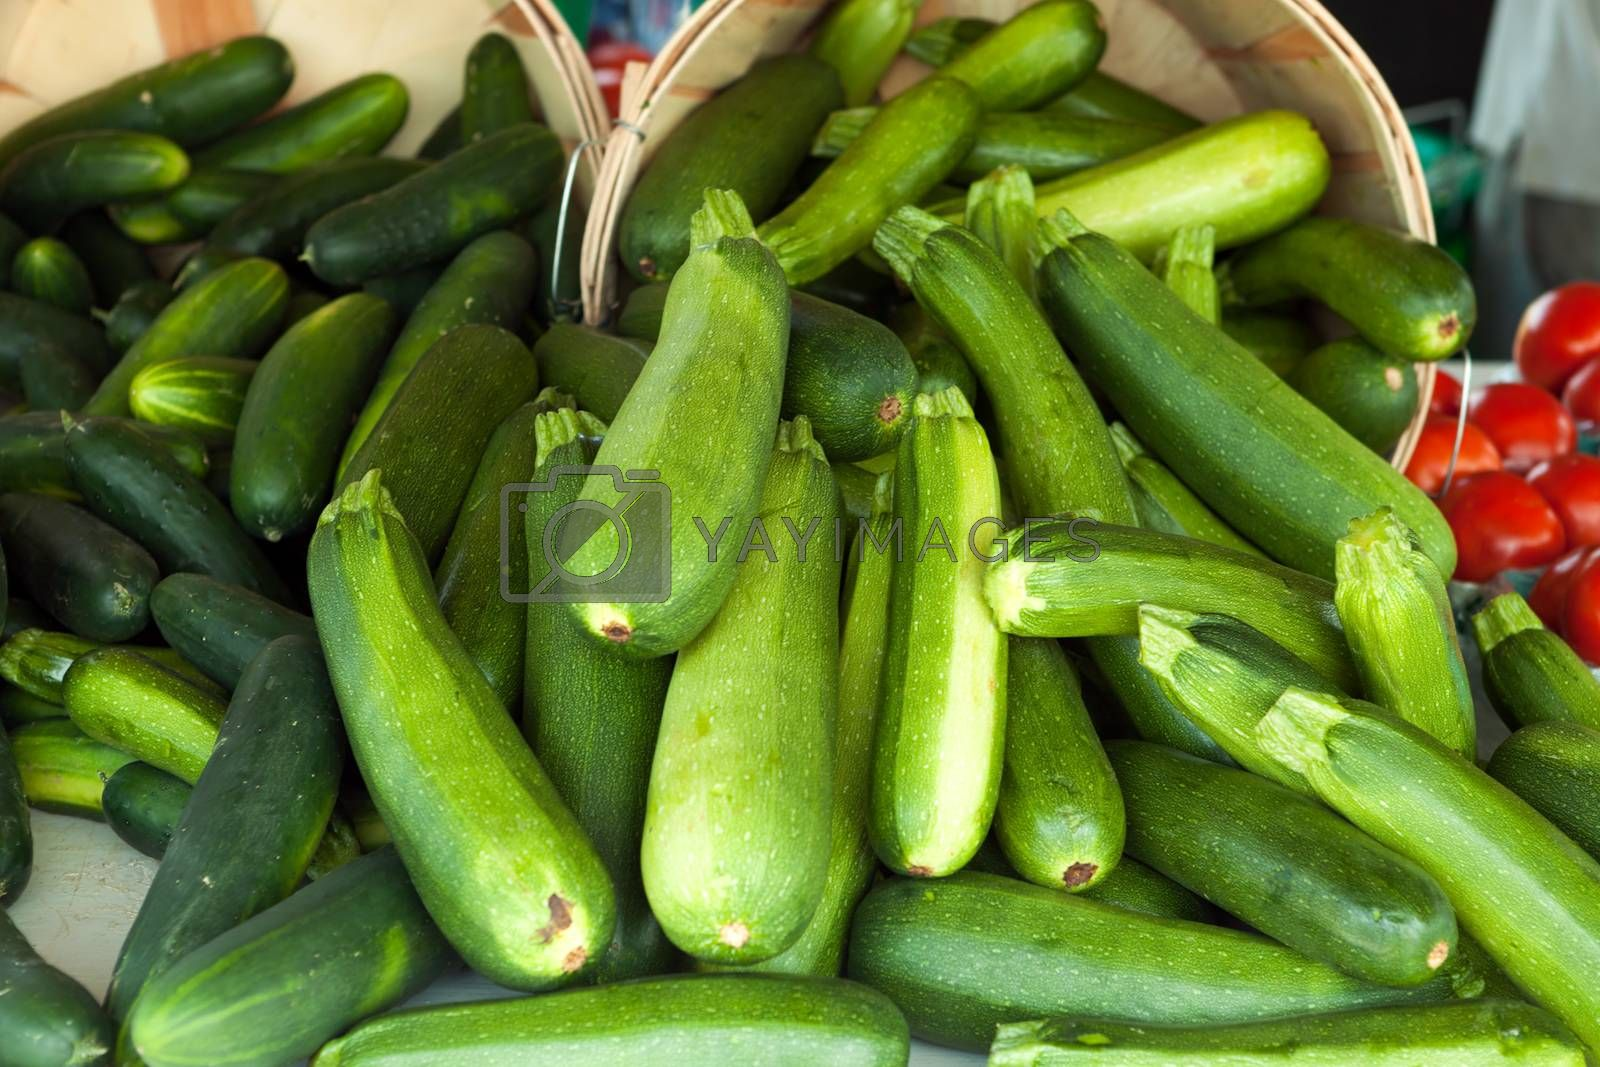 Zucchini squash on display at the farmers market. Shallow depth of field.